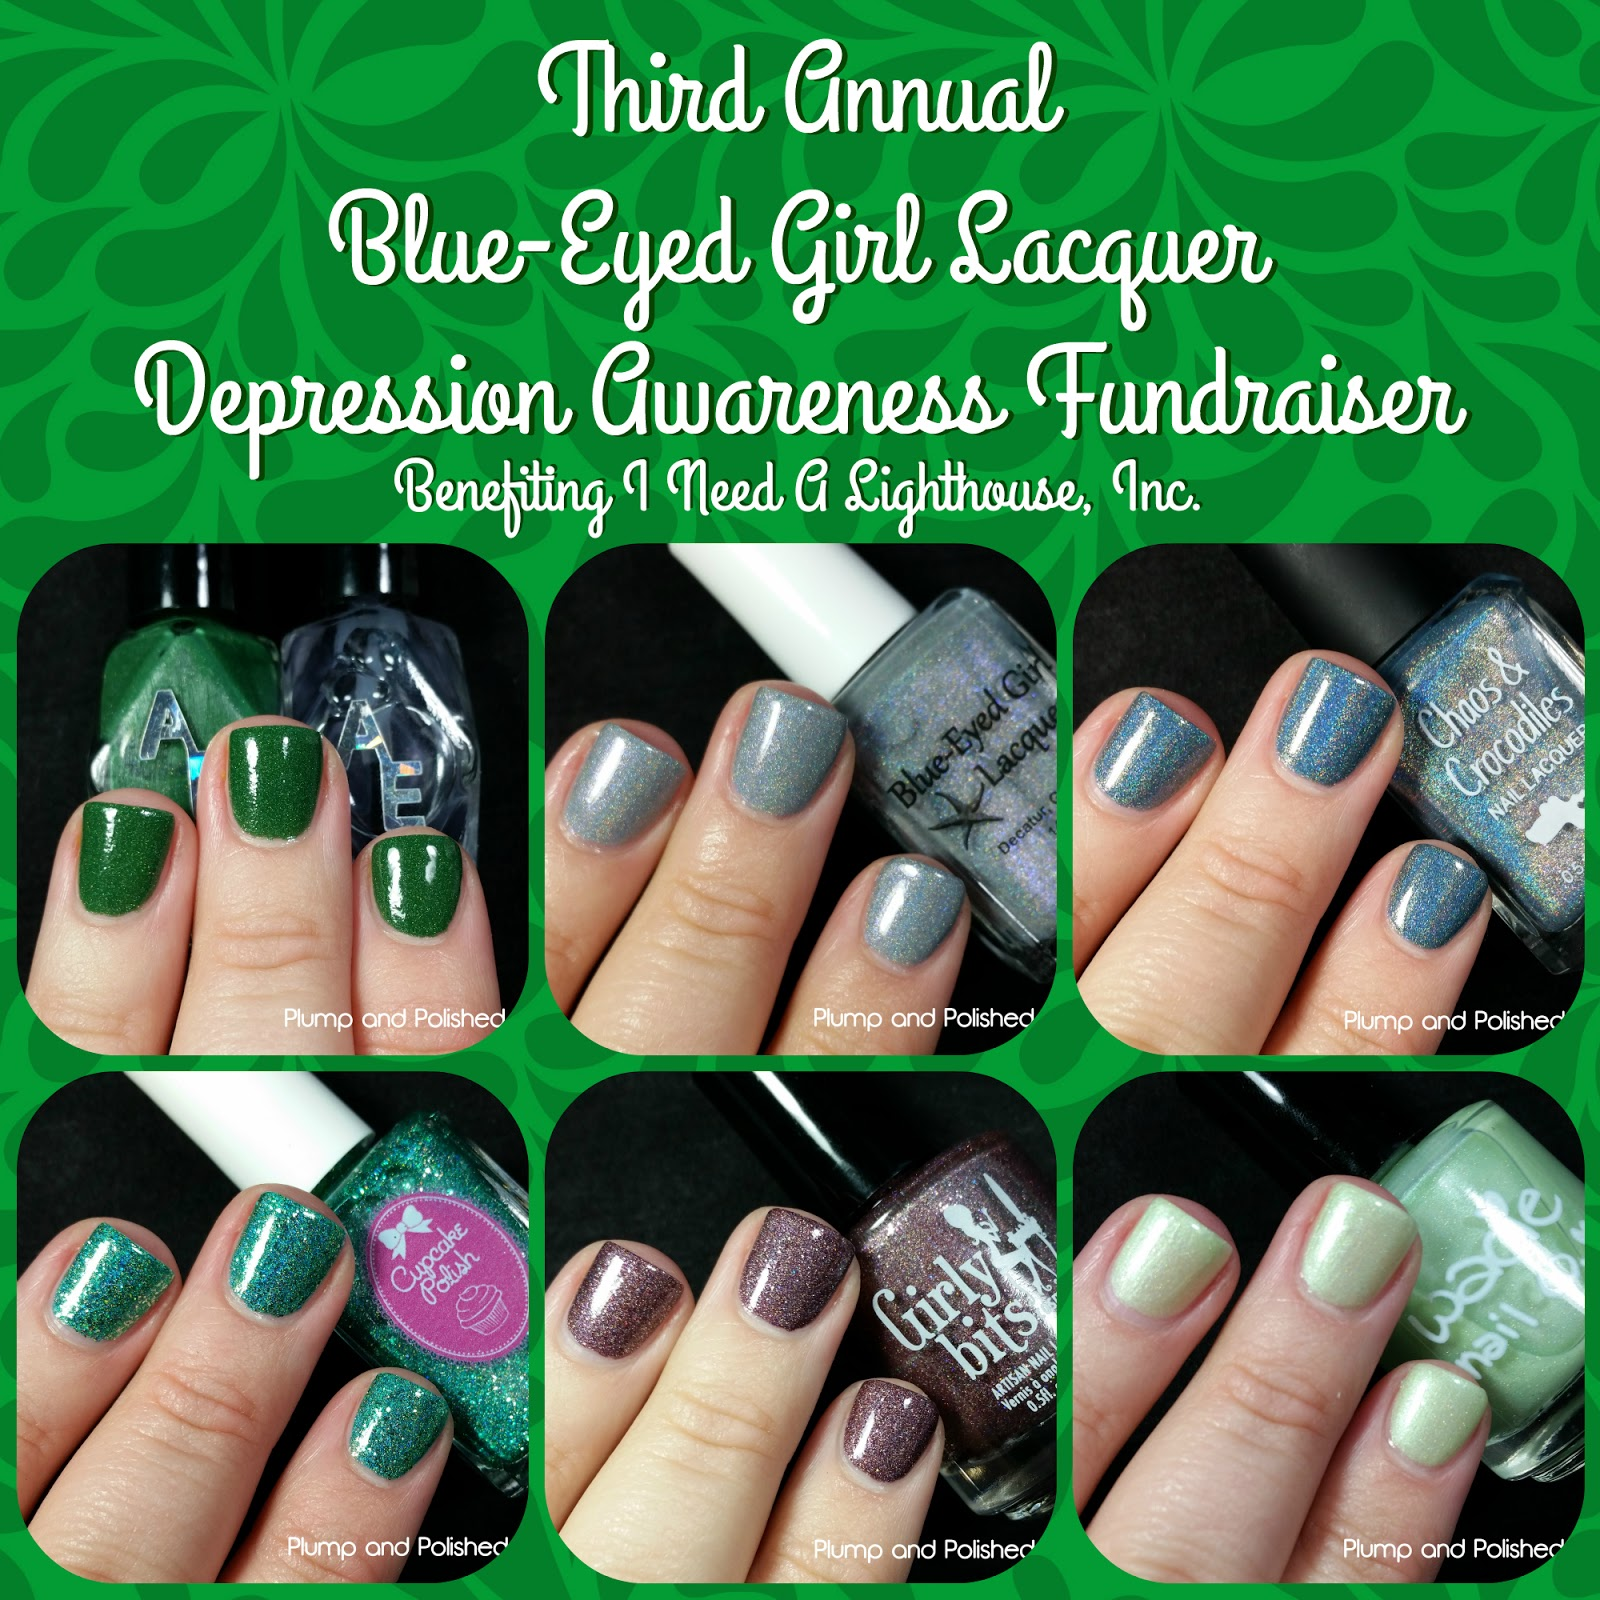 Julie Of Blue Eyed Lacquer Is Hosting Her Third Annual Depression Awareness Fundraiser Benefiting I Need A Lighthouse